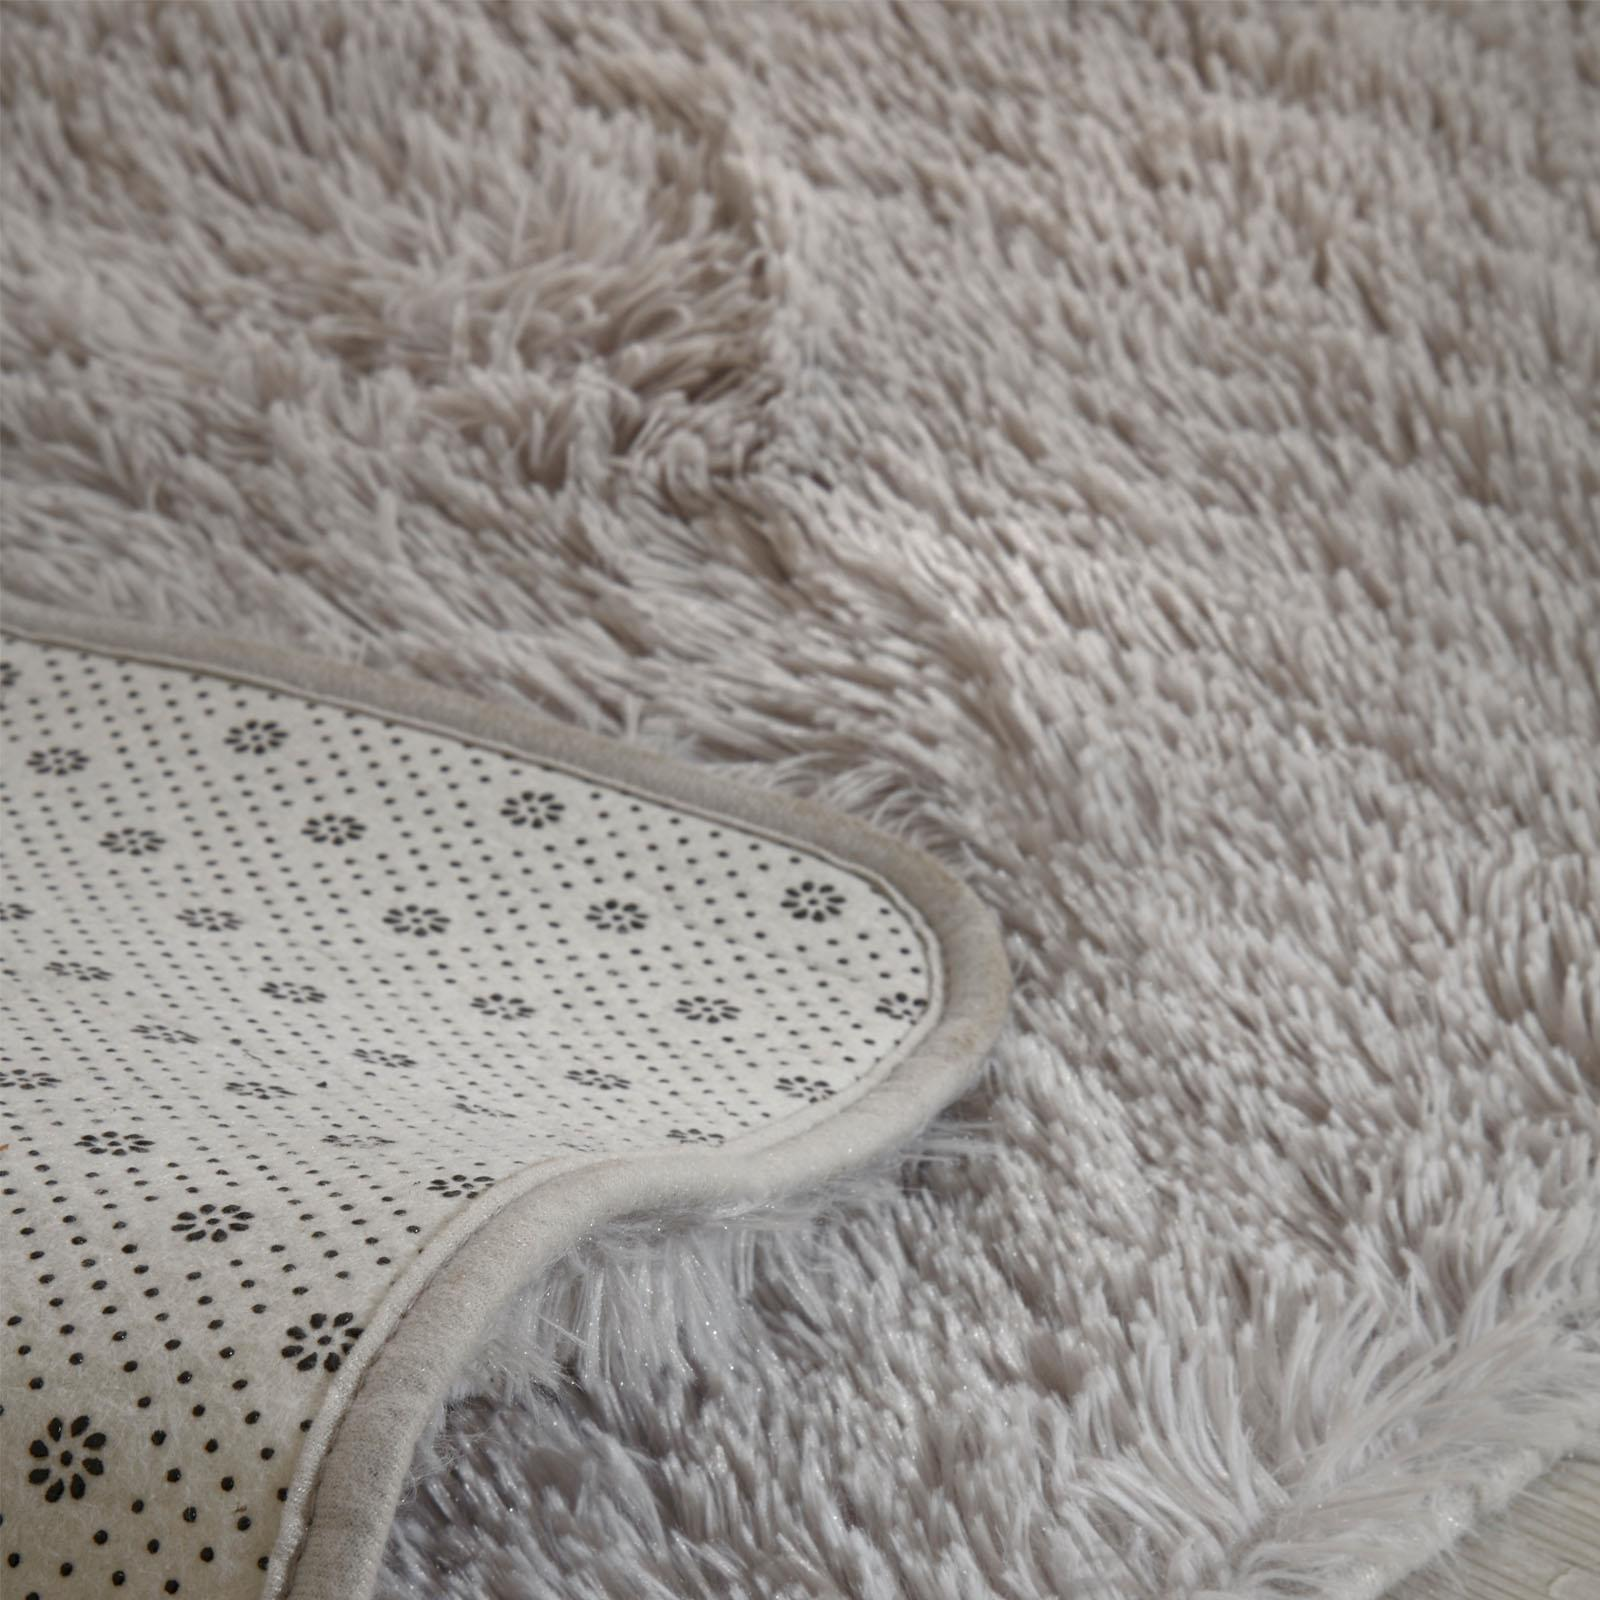 Sienna-Fluffy-Rug-Anti-Slip-Skid-Shaggy-Large-Bedroom-Non-Shed-Floor-Carpet-Mat thumbnail 11